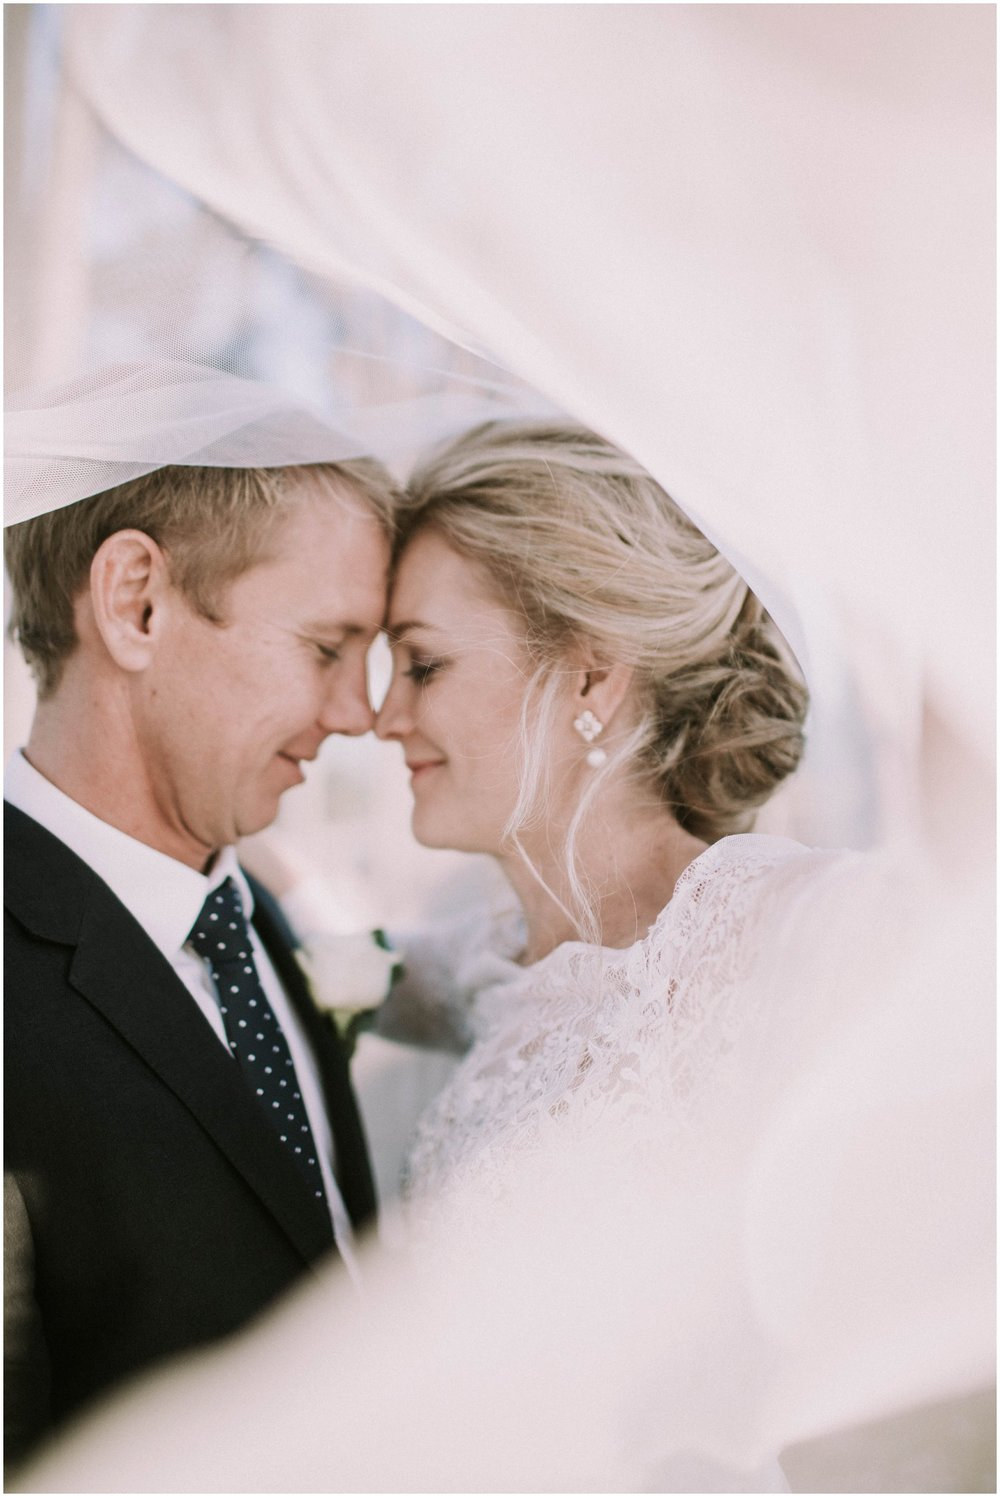 Top Wedding Photographer Cape Town South Africa Artistic Creative Documentary Wedding Photography Rue Kruger_0759.jpg